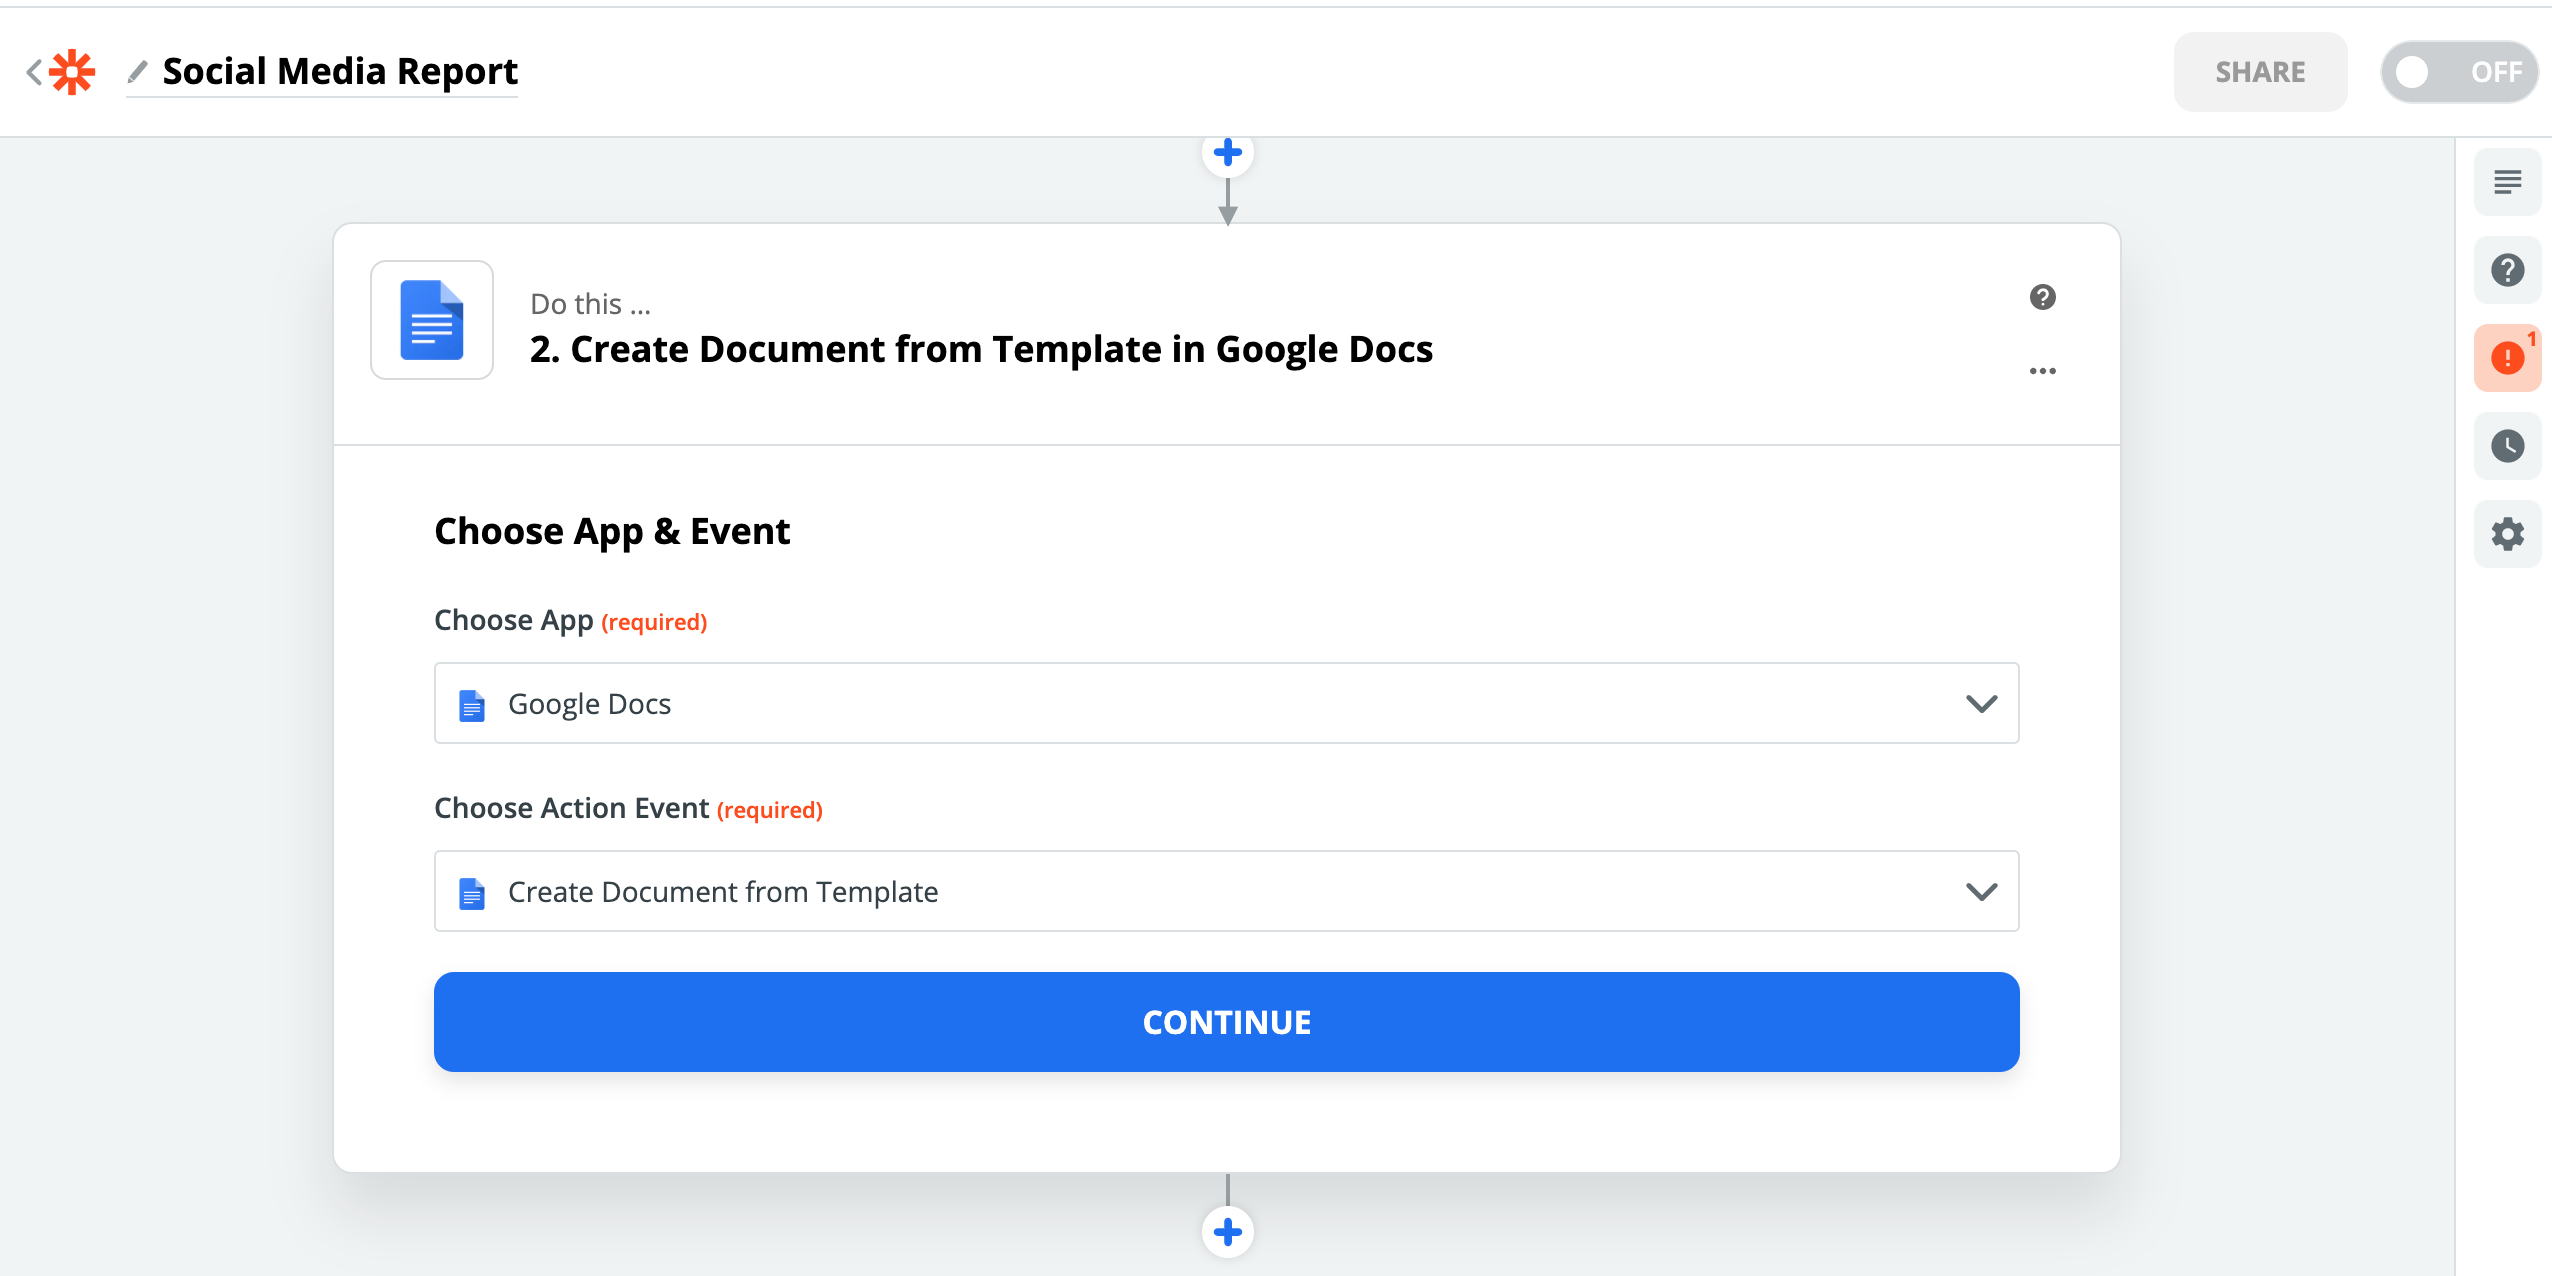 Select 'Google Docs' as the action app and 'Create a Document from Template'  as the action step. This will create a google document from the Social Media Report Template.